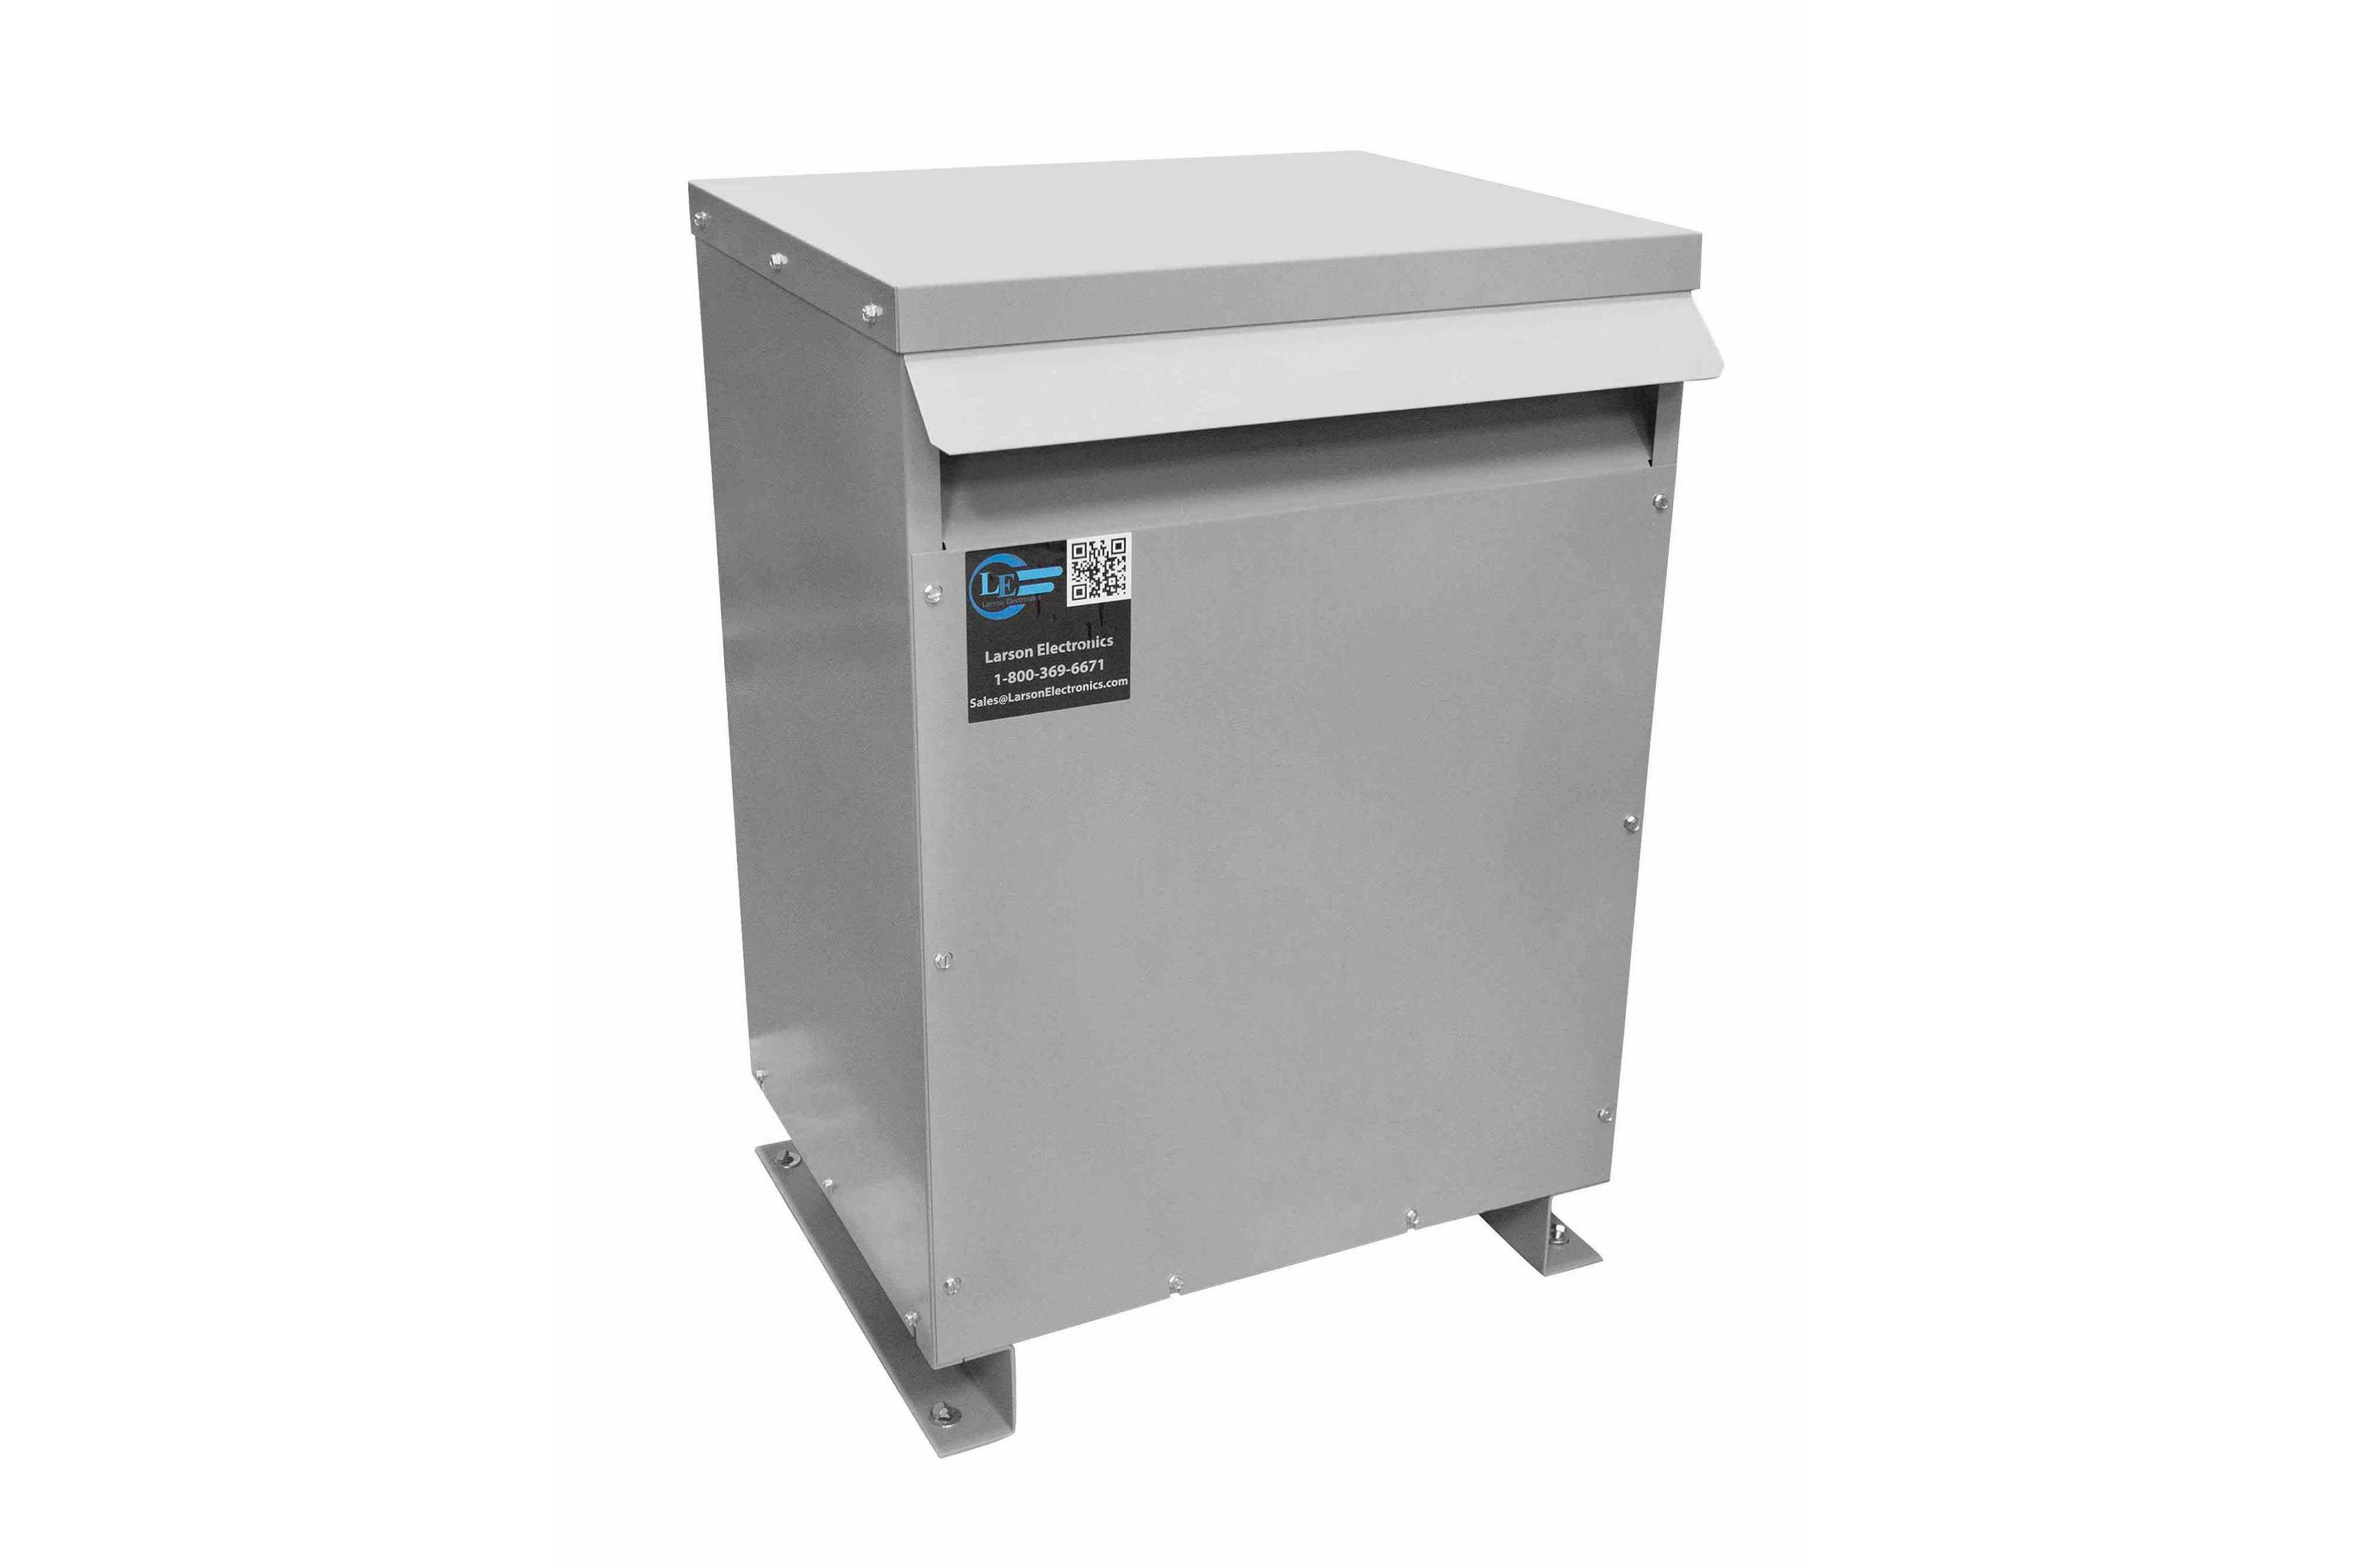 110 kVA 3PH Isolation Transformer, 480V Wye Primary, 415V Delta Secondary, N3R, Ventilated, 60 Hz